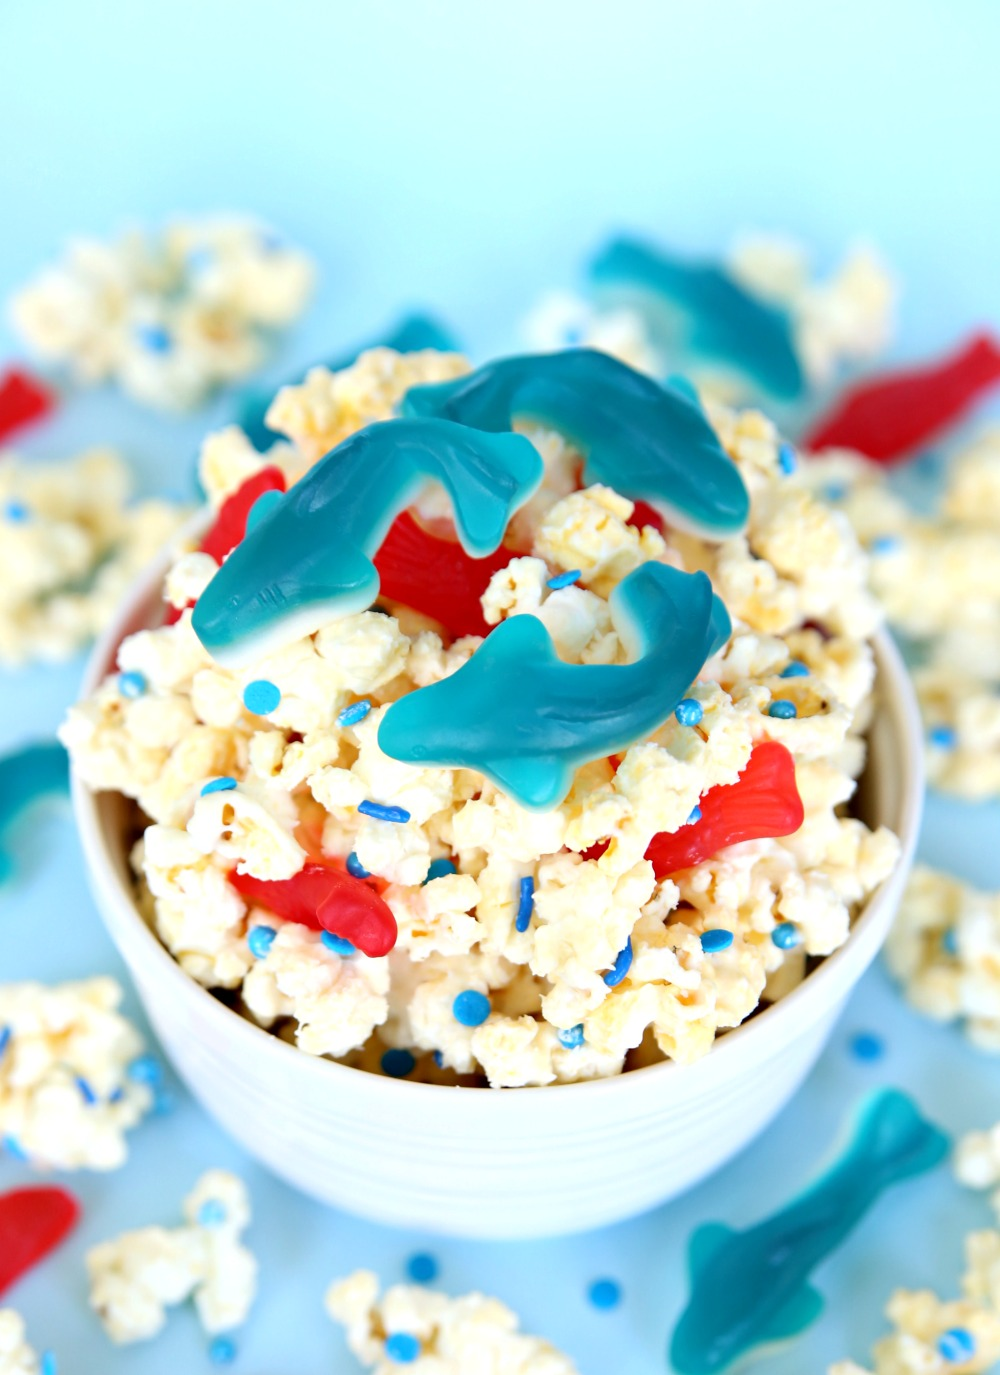 Celebrate Shark Week with Shark Bait Popcorn! A sweet and salty treat perfect for Shark Week.